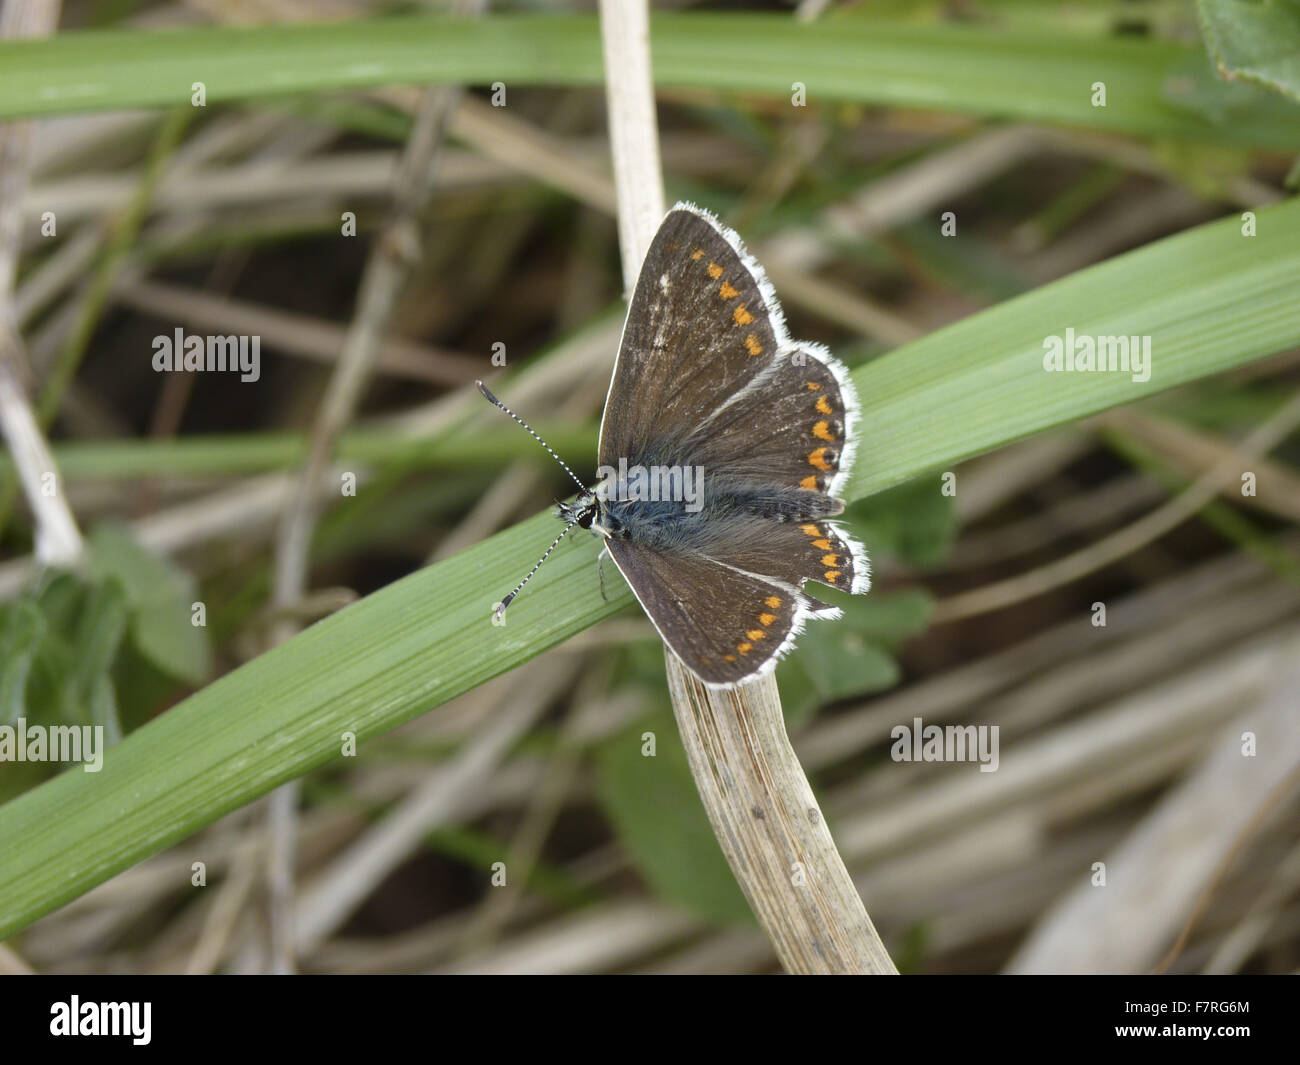 Northern Brown Argus butterfly, male - Stock Image